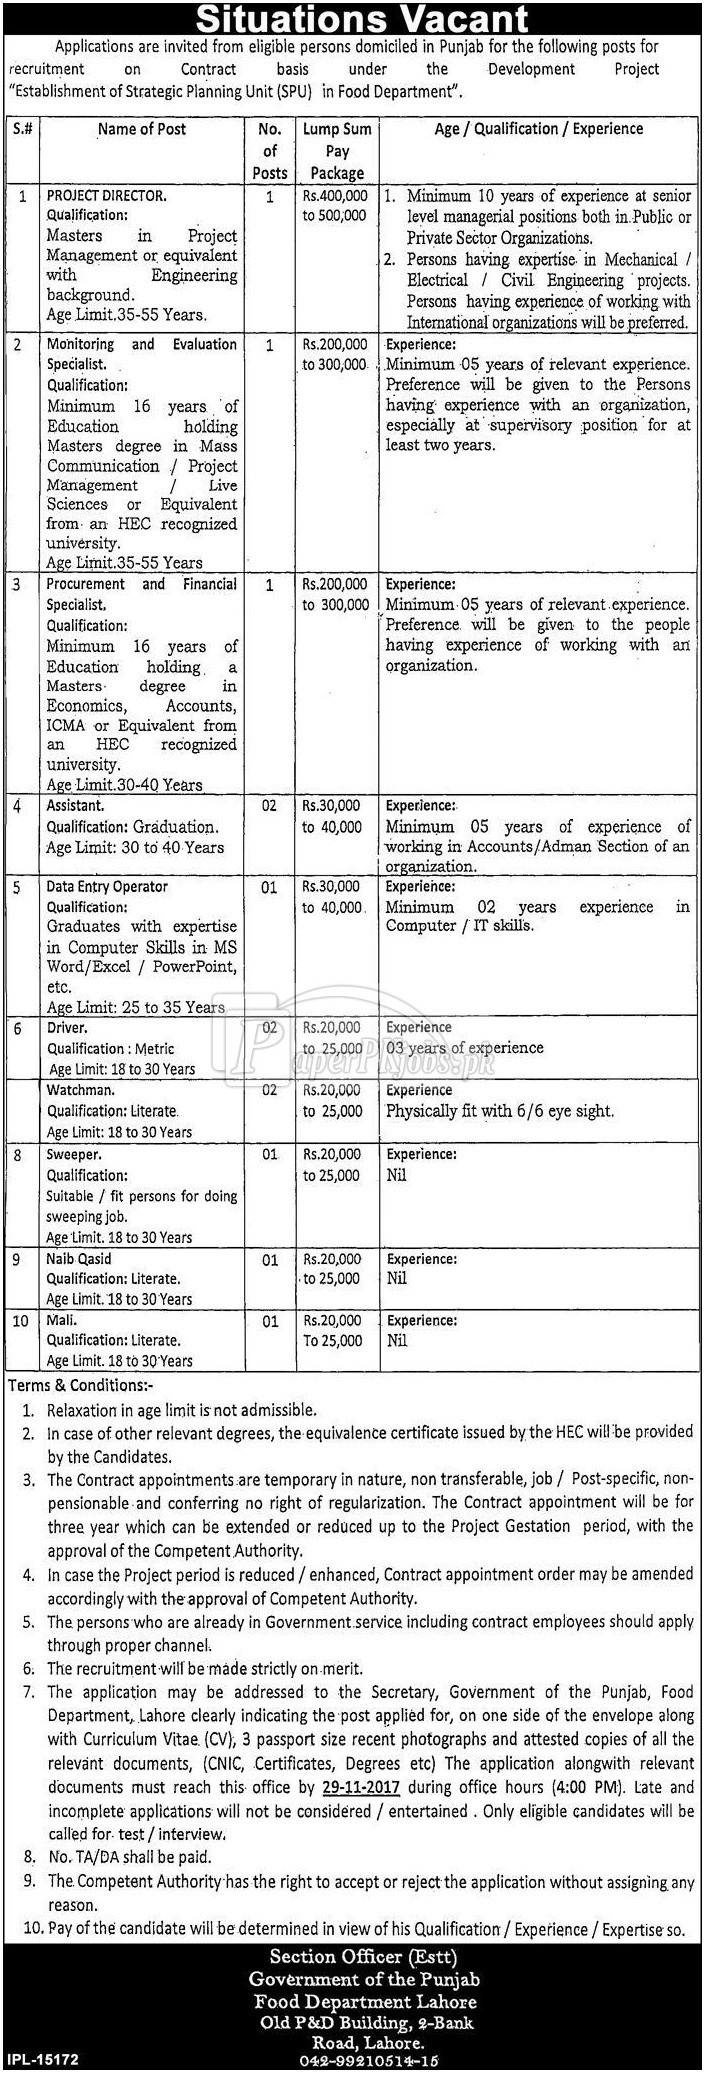 Food Department Lahore Government of Punjab Jobs 2017